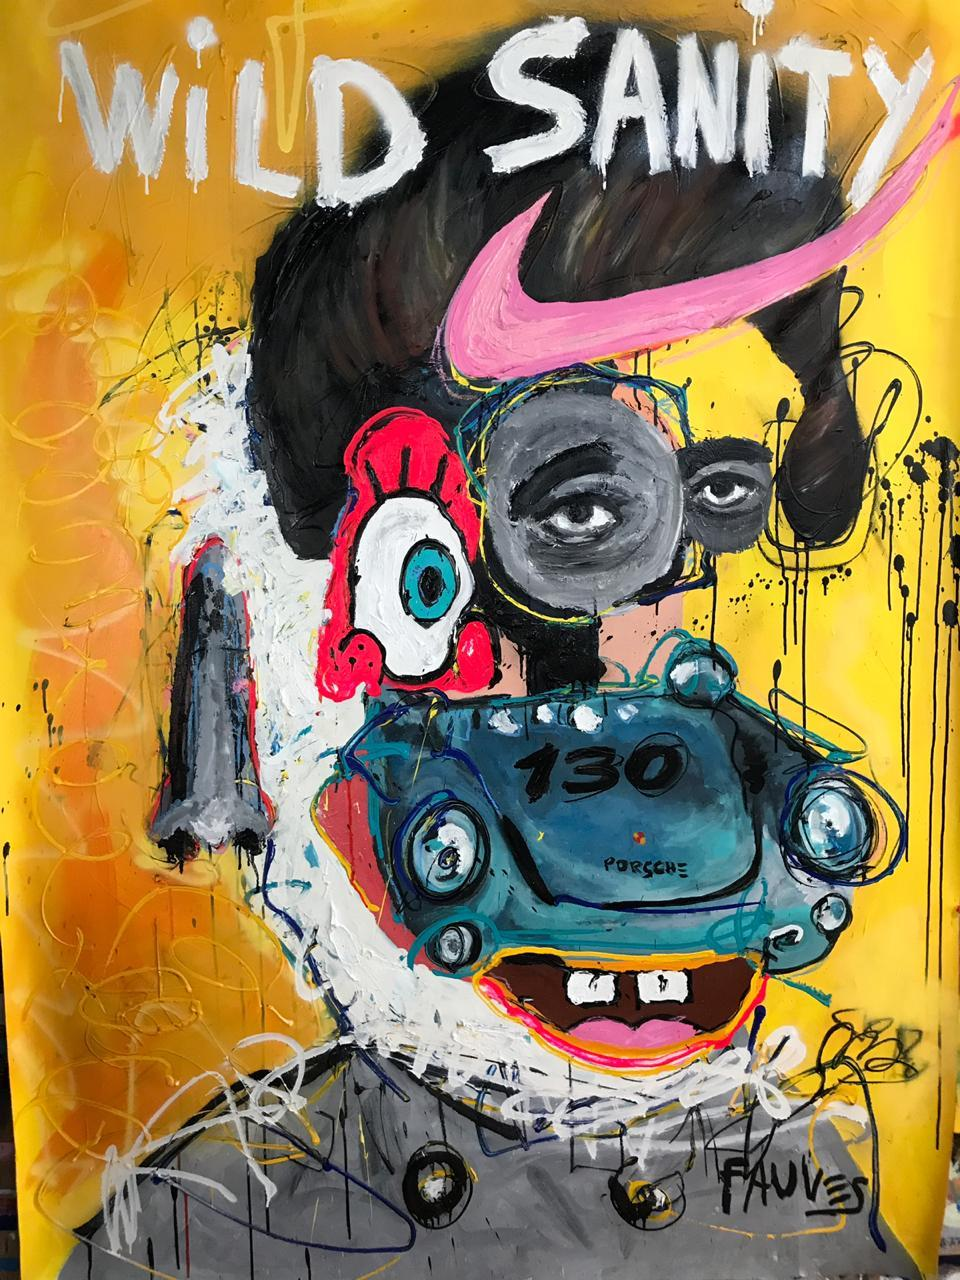 """""""Wild Sanity"""" Mixed media Painting 75x52 inch by John Paul Fauves"""